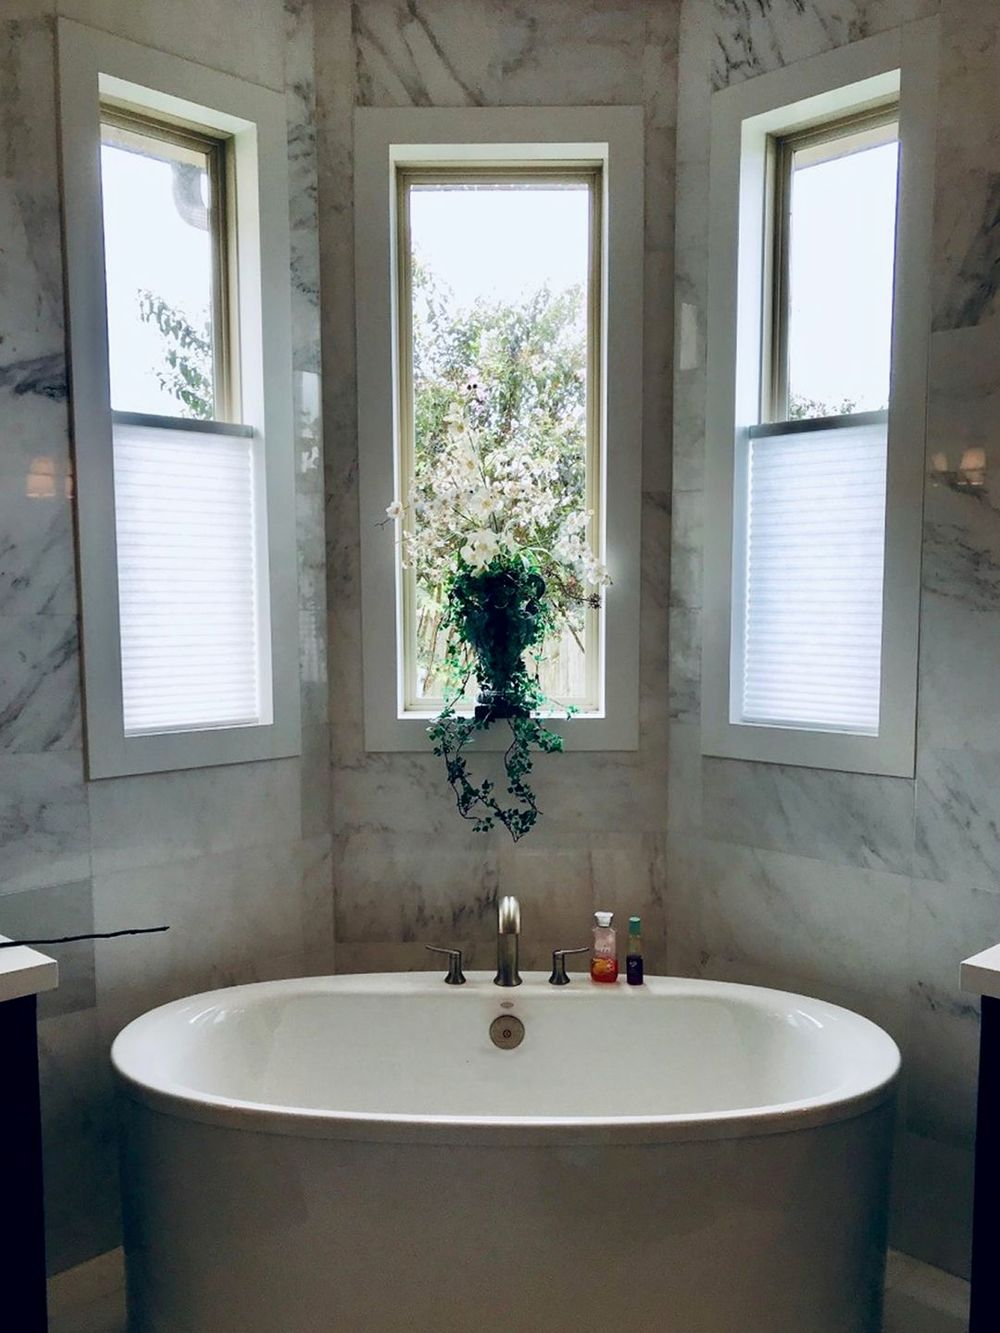 A focused look at this primary bathroom's freestanding deep soaking tub surrounded by gorgeous marble tiles walls.